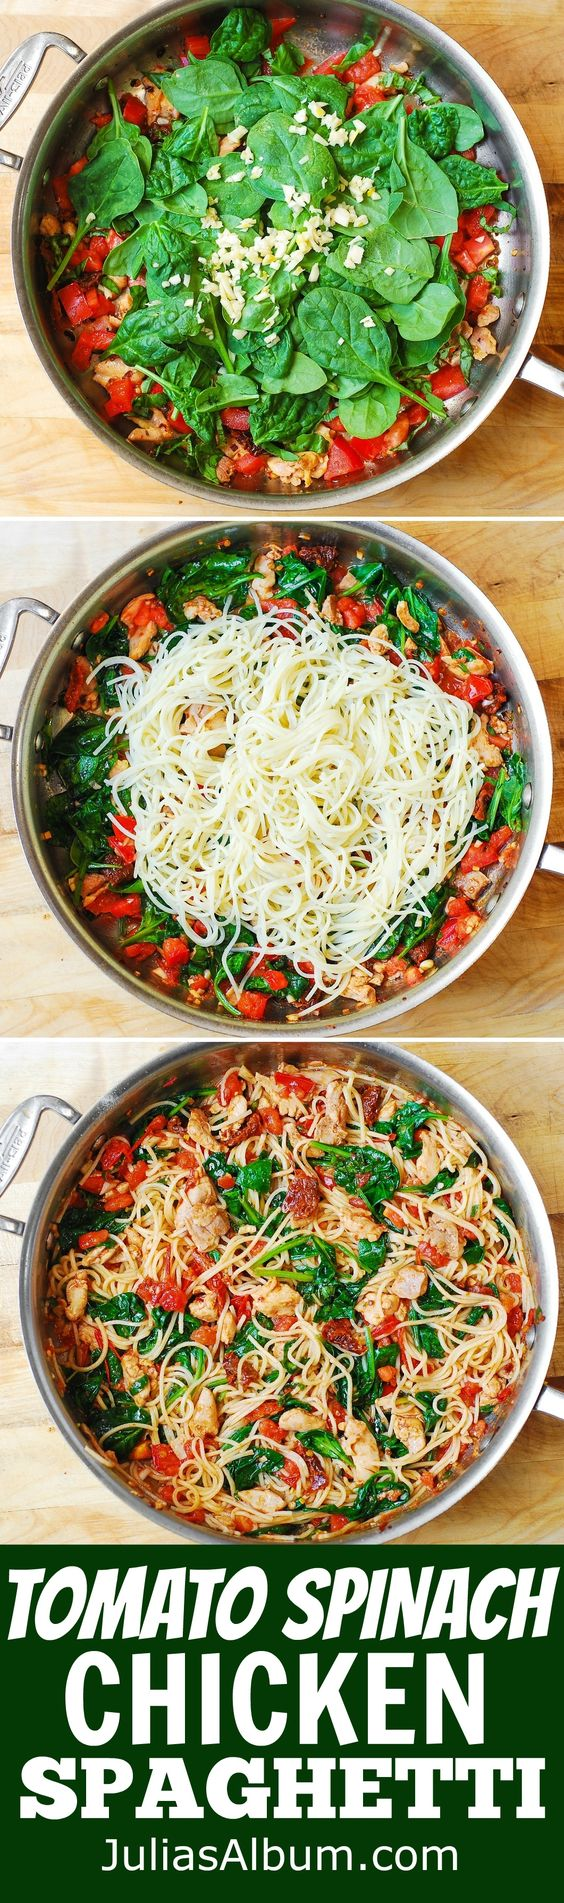 Tomato Basil & Spinach Chicken Spaghetti – healthy, light, Mediterranean style dinner, packed with vegetables, protein and good oils.: